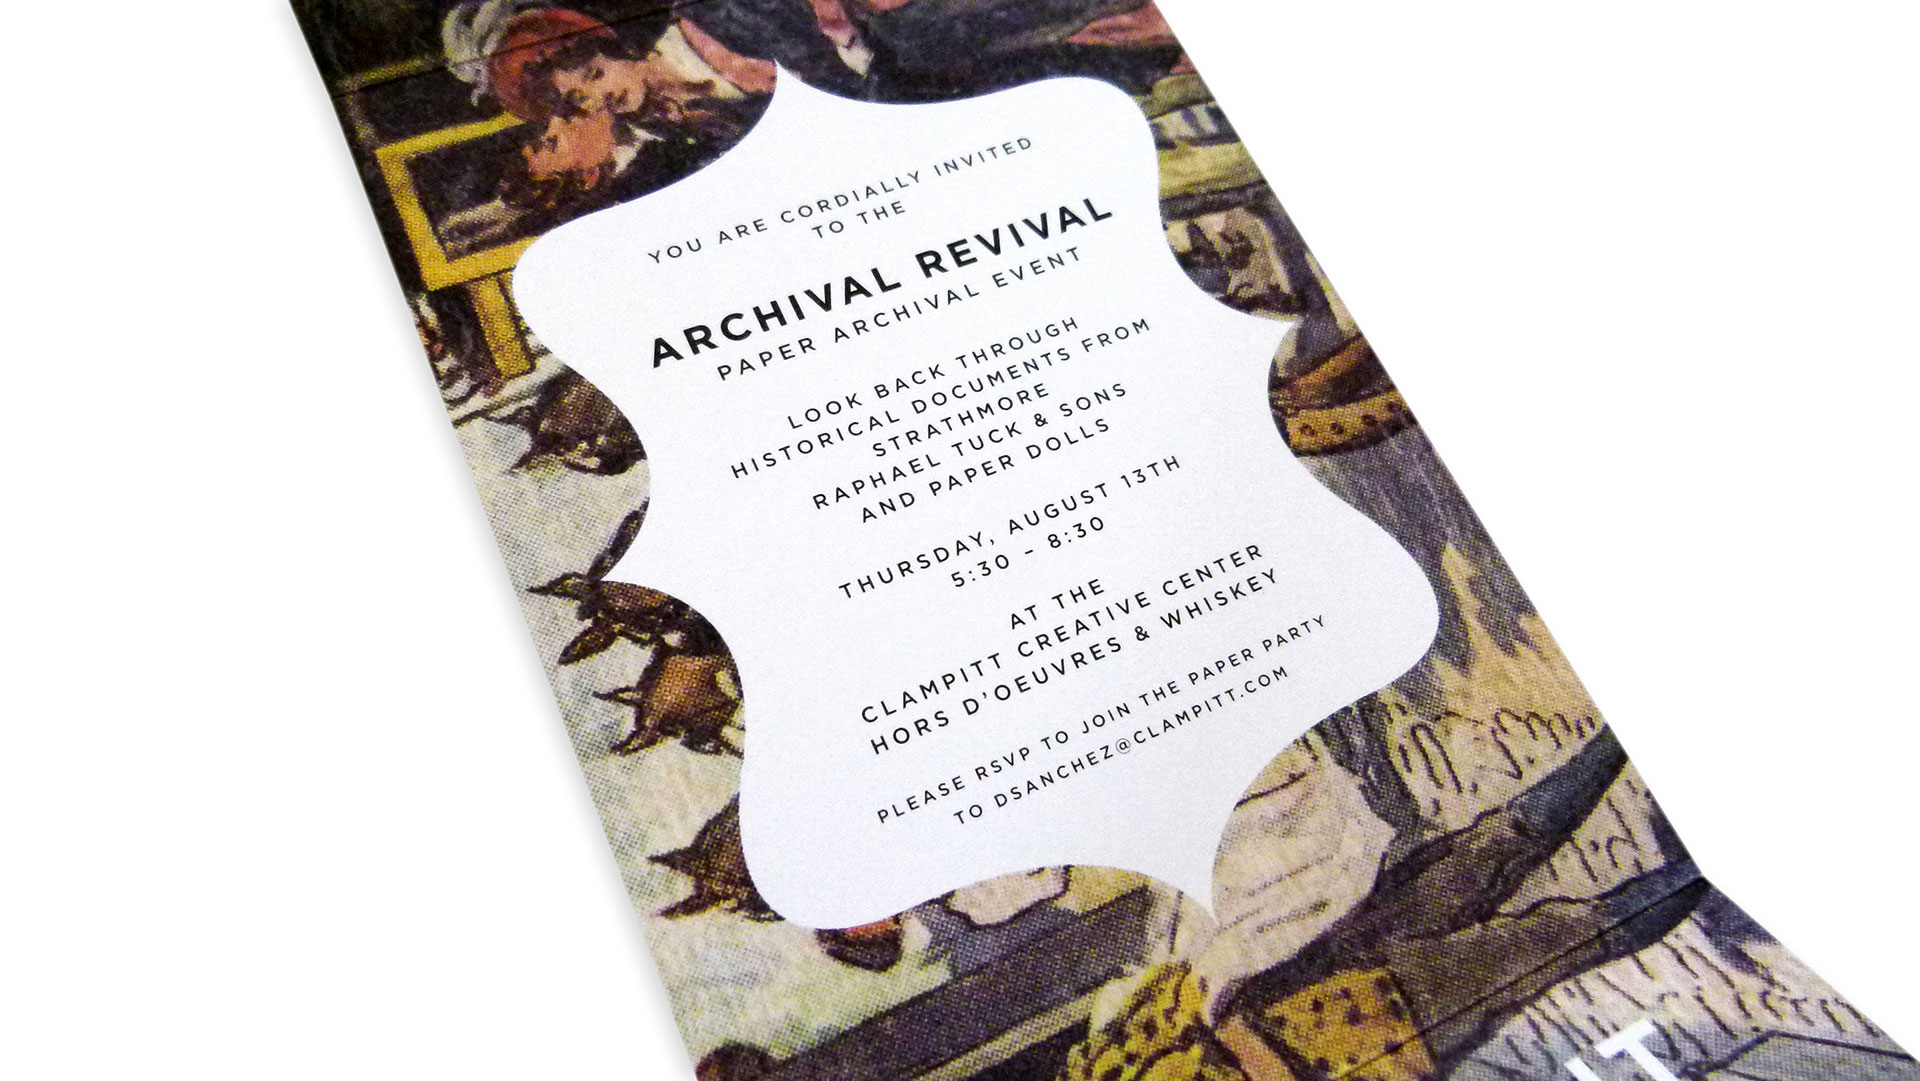 Clampitt Paper Archival Revival Invitation – PaperSpecs